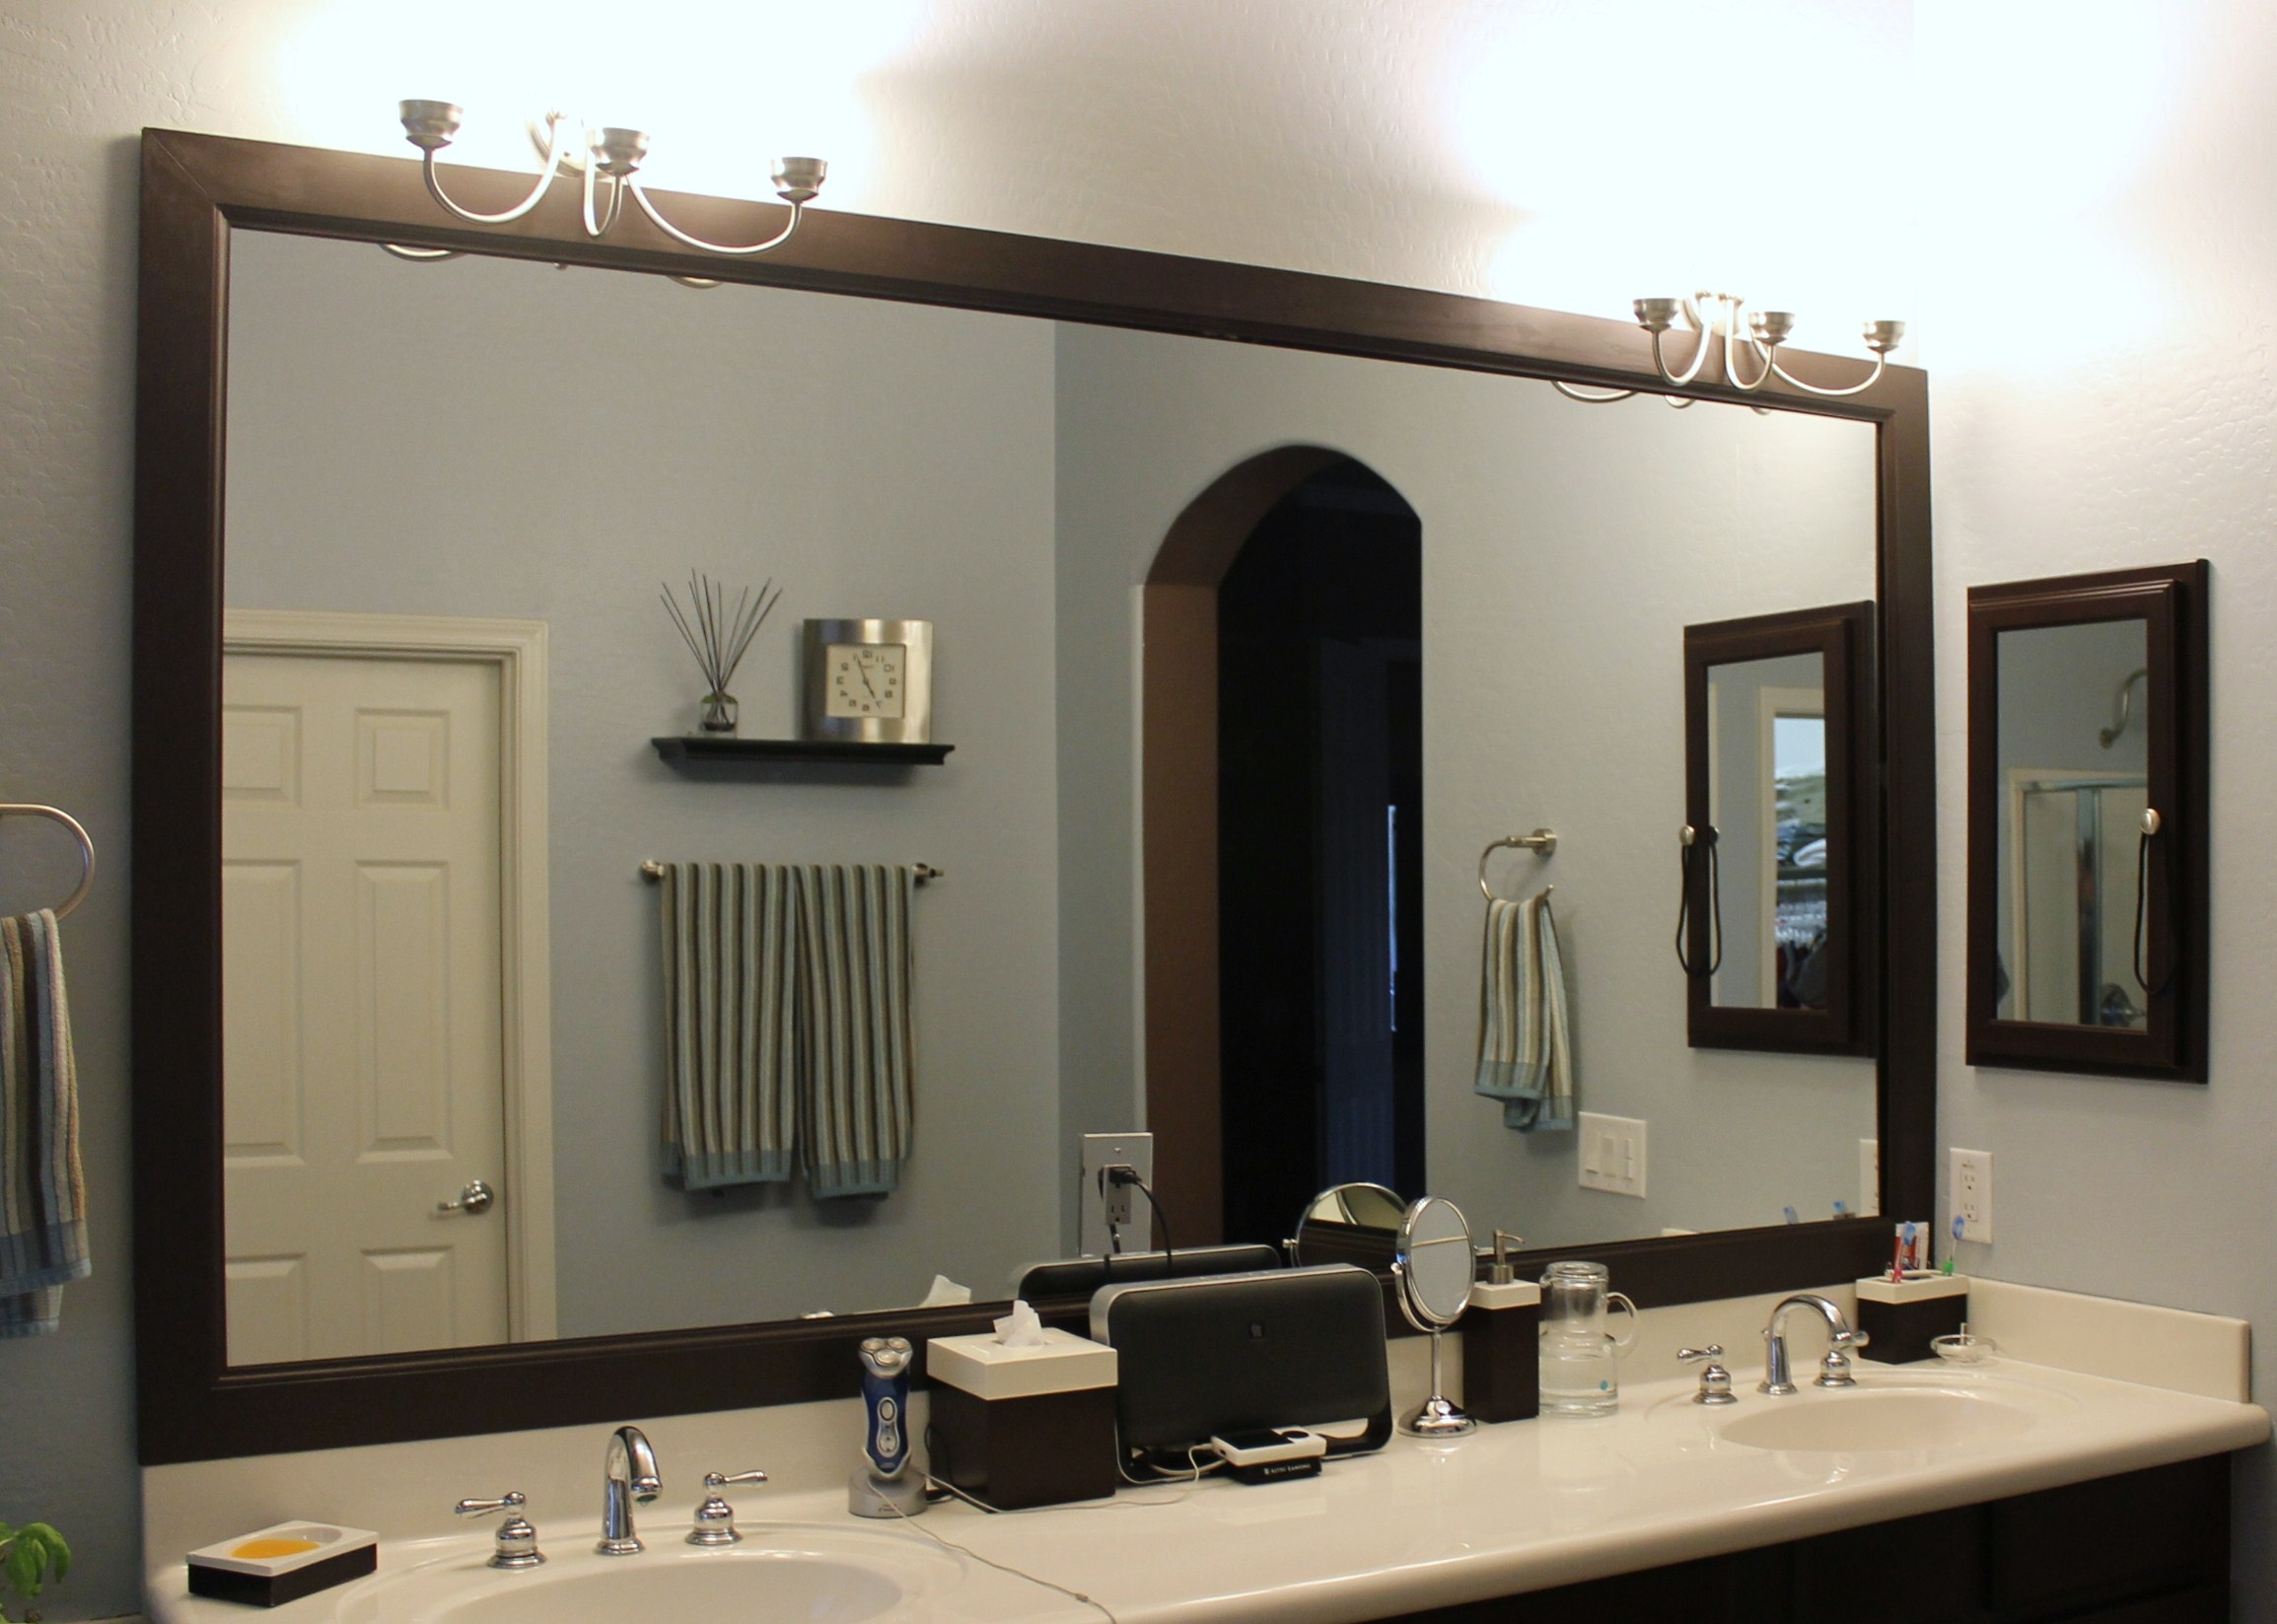 Diy Wood Frame Bathroom Mirror